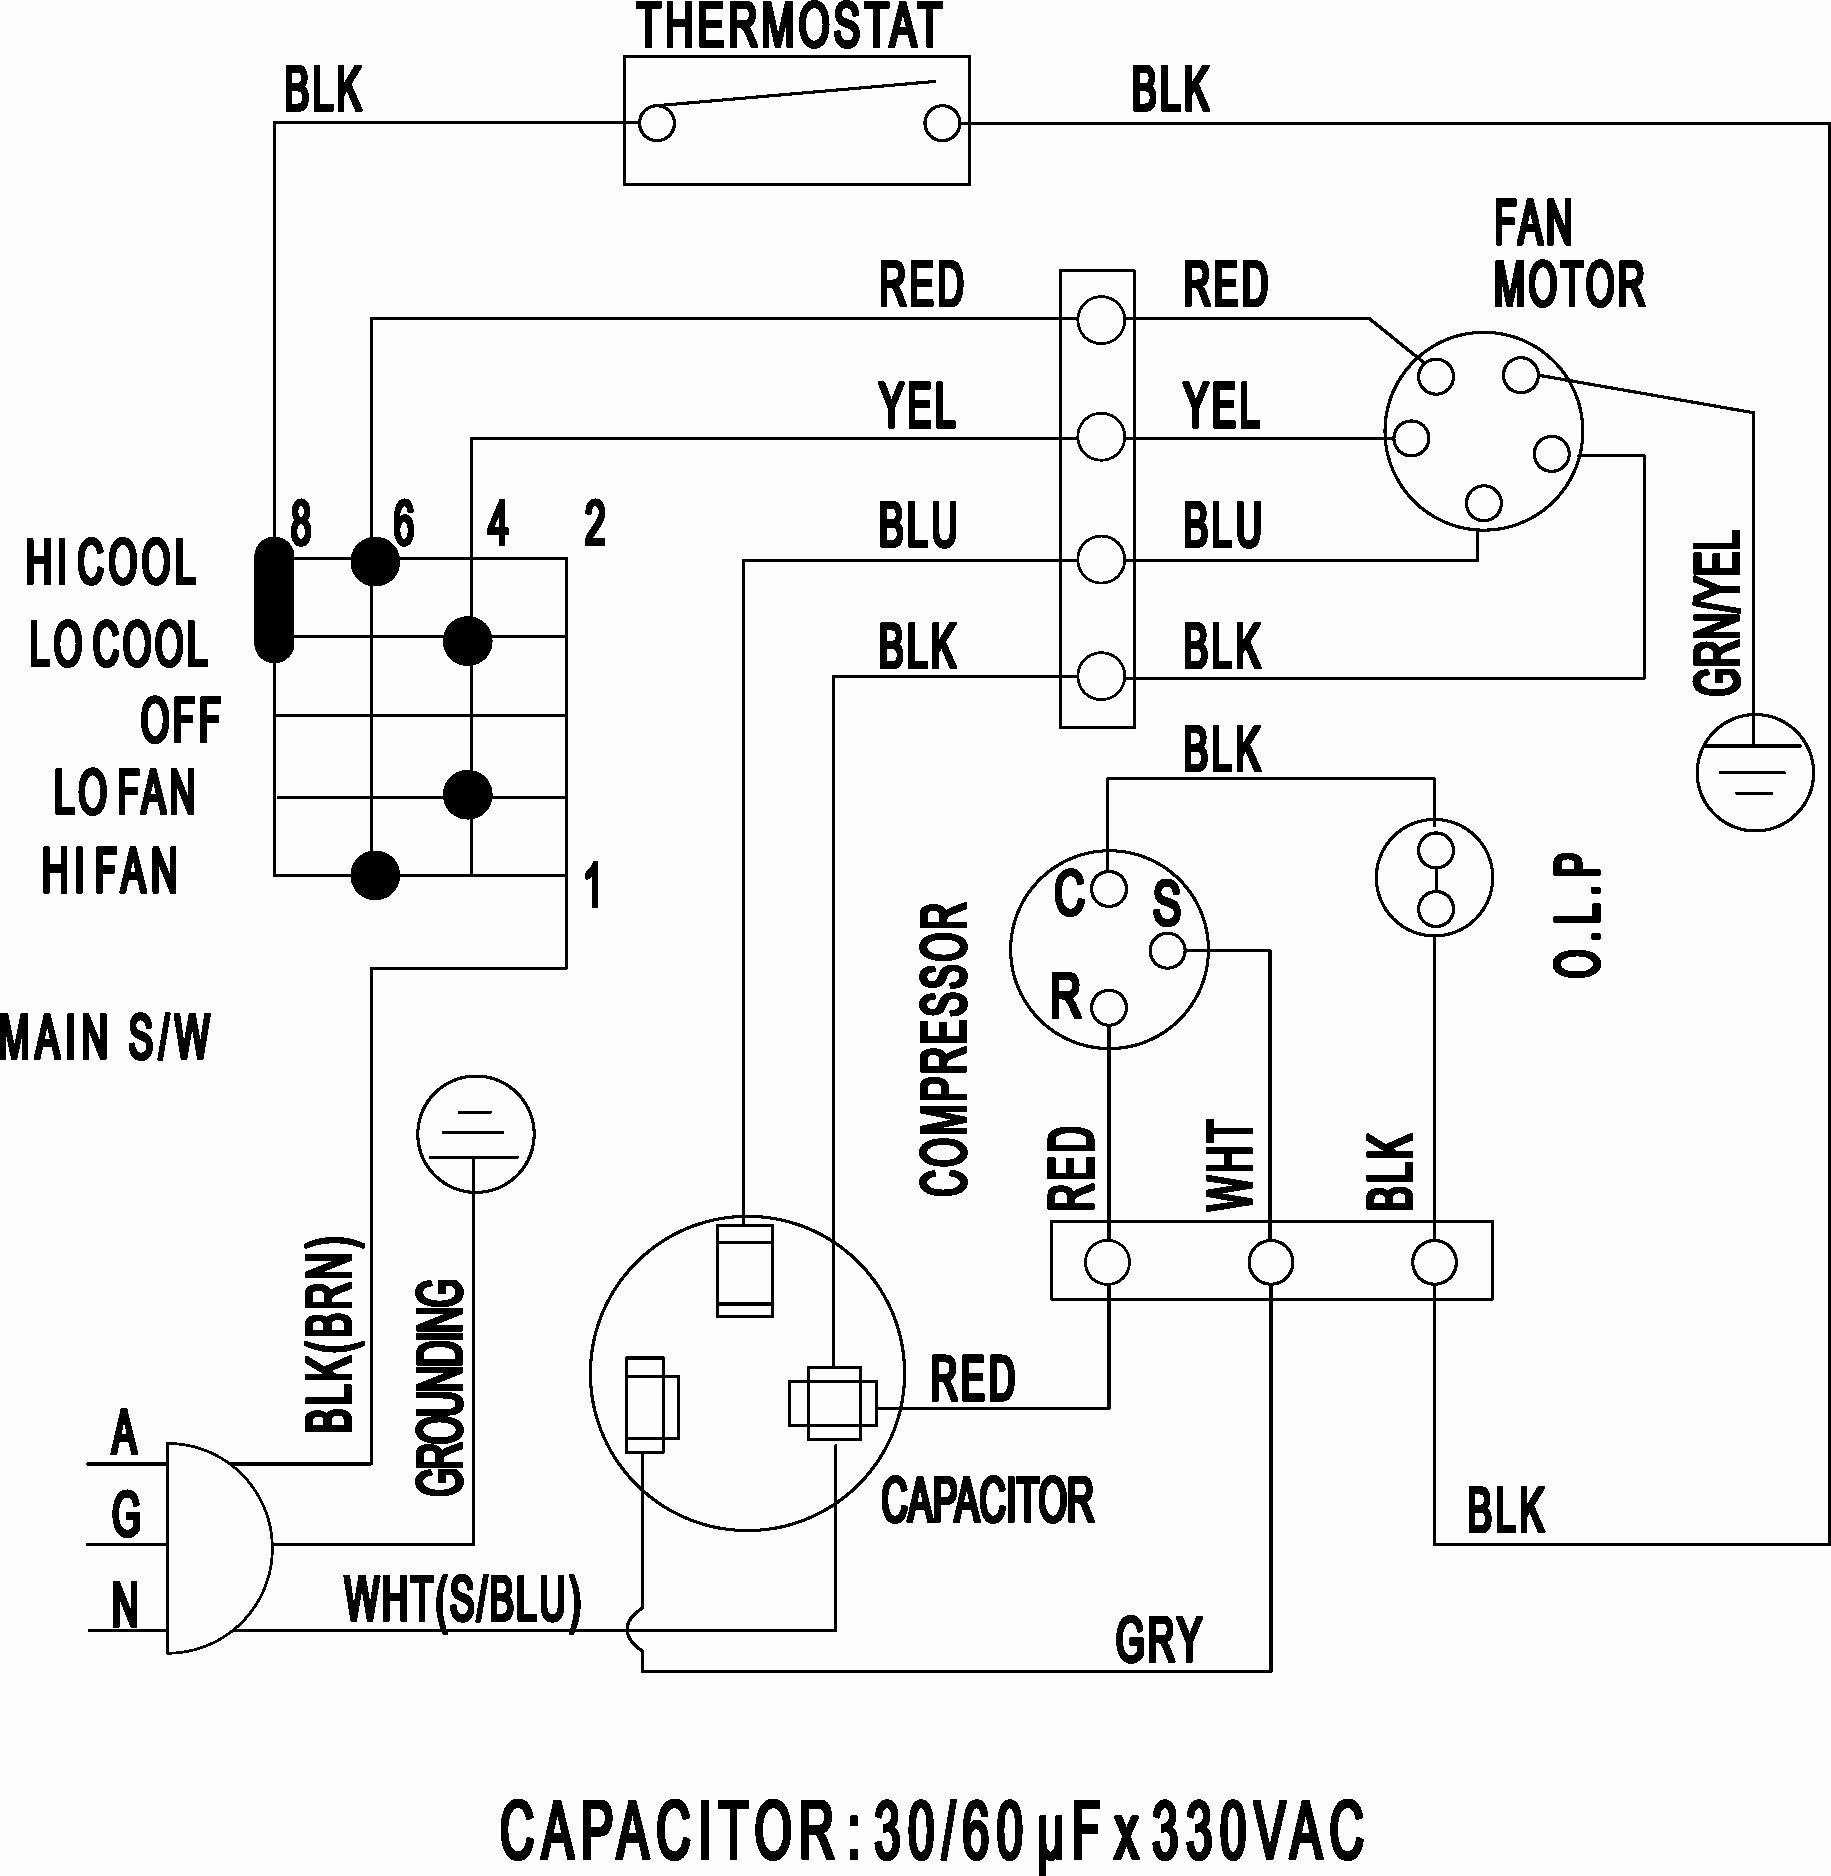 Ac Unit Wiring Diagram